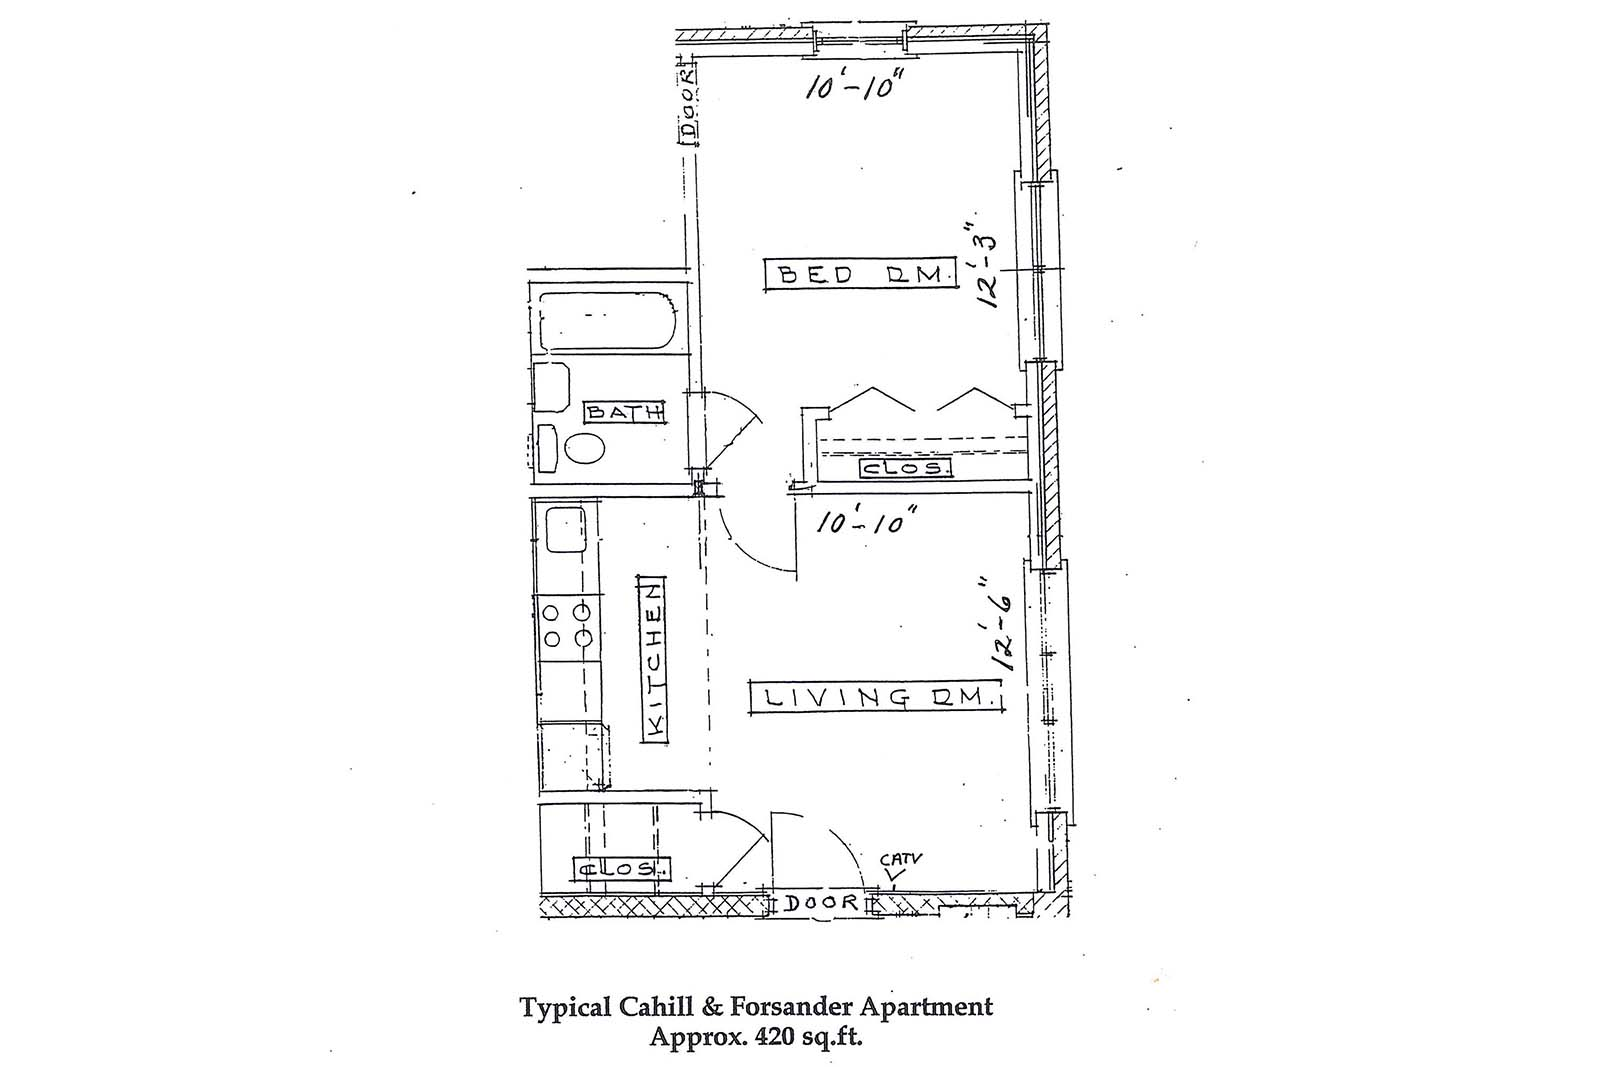 Cahill & Forsander Apartments layout Approx 420 sq ft